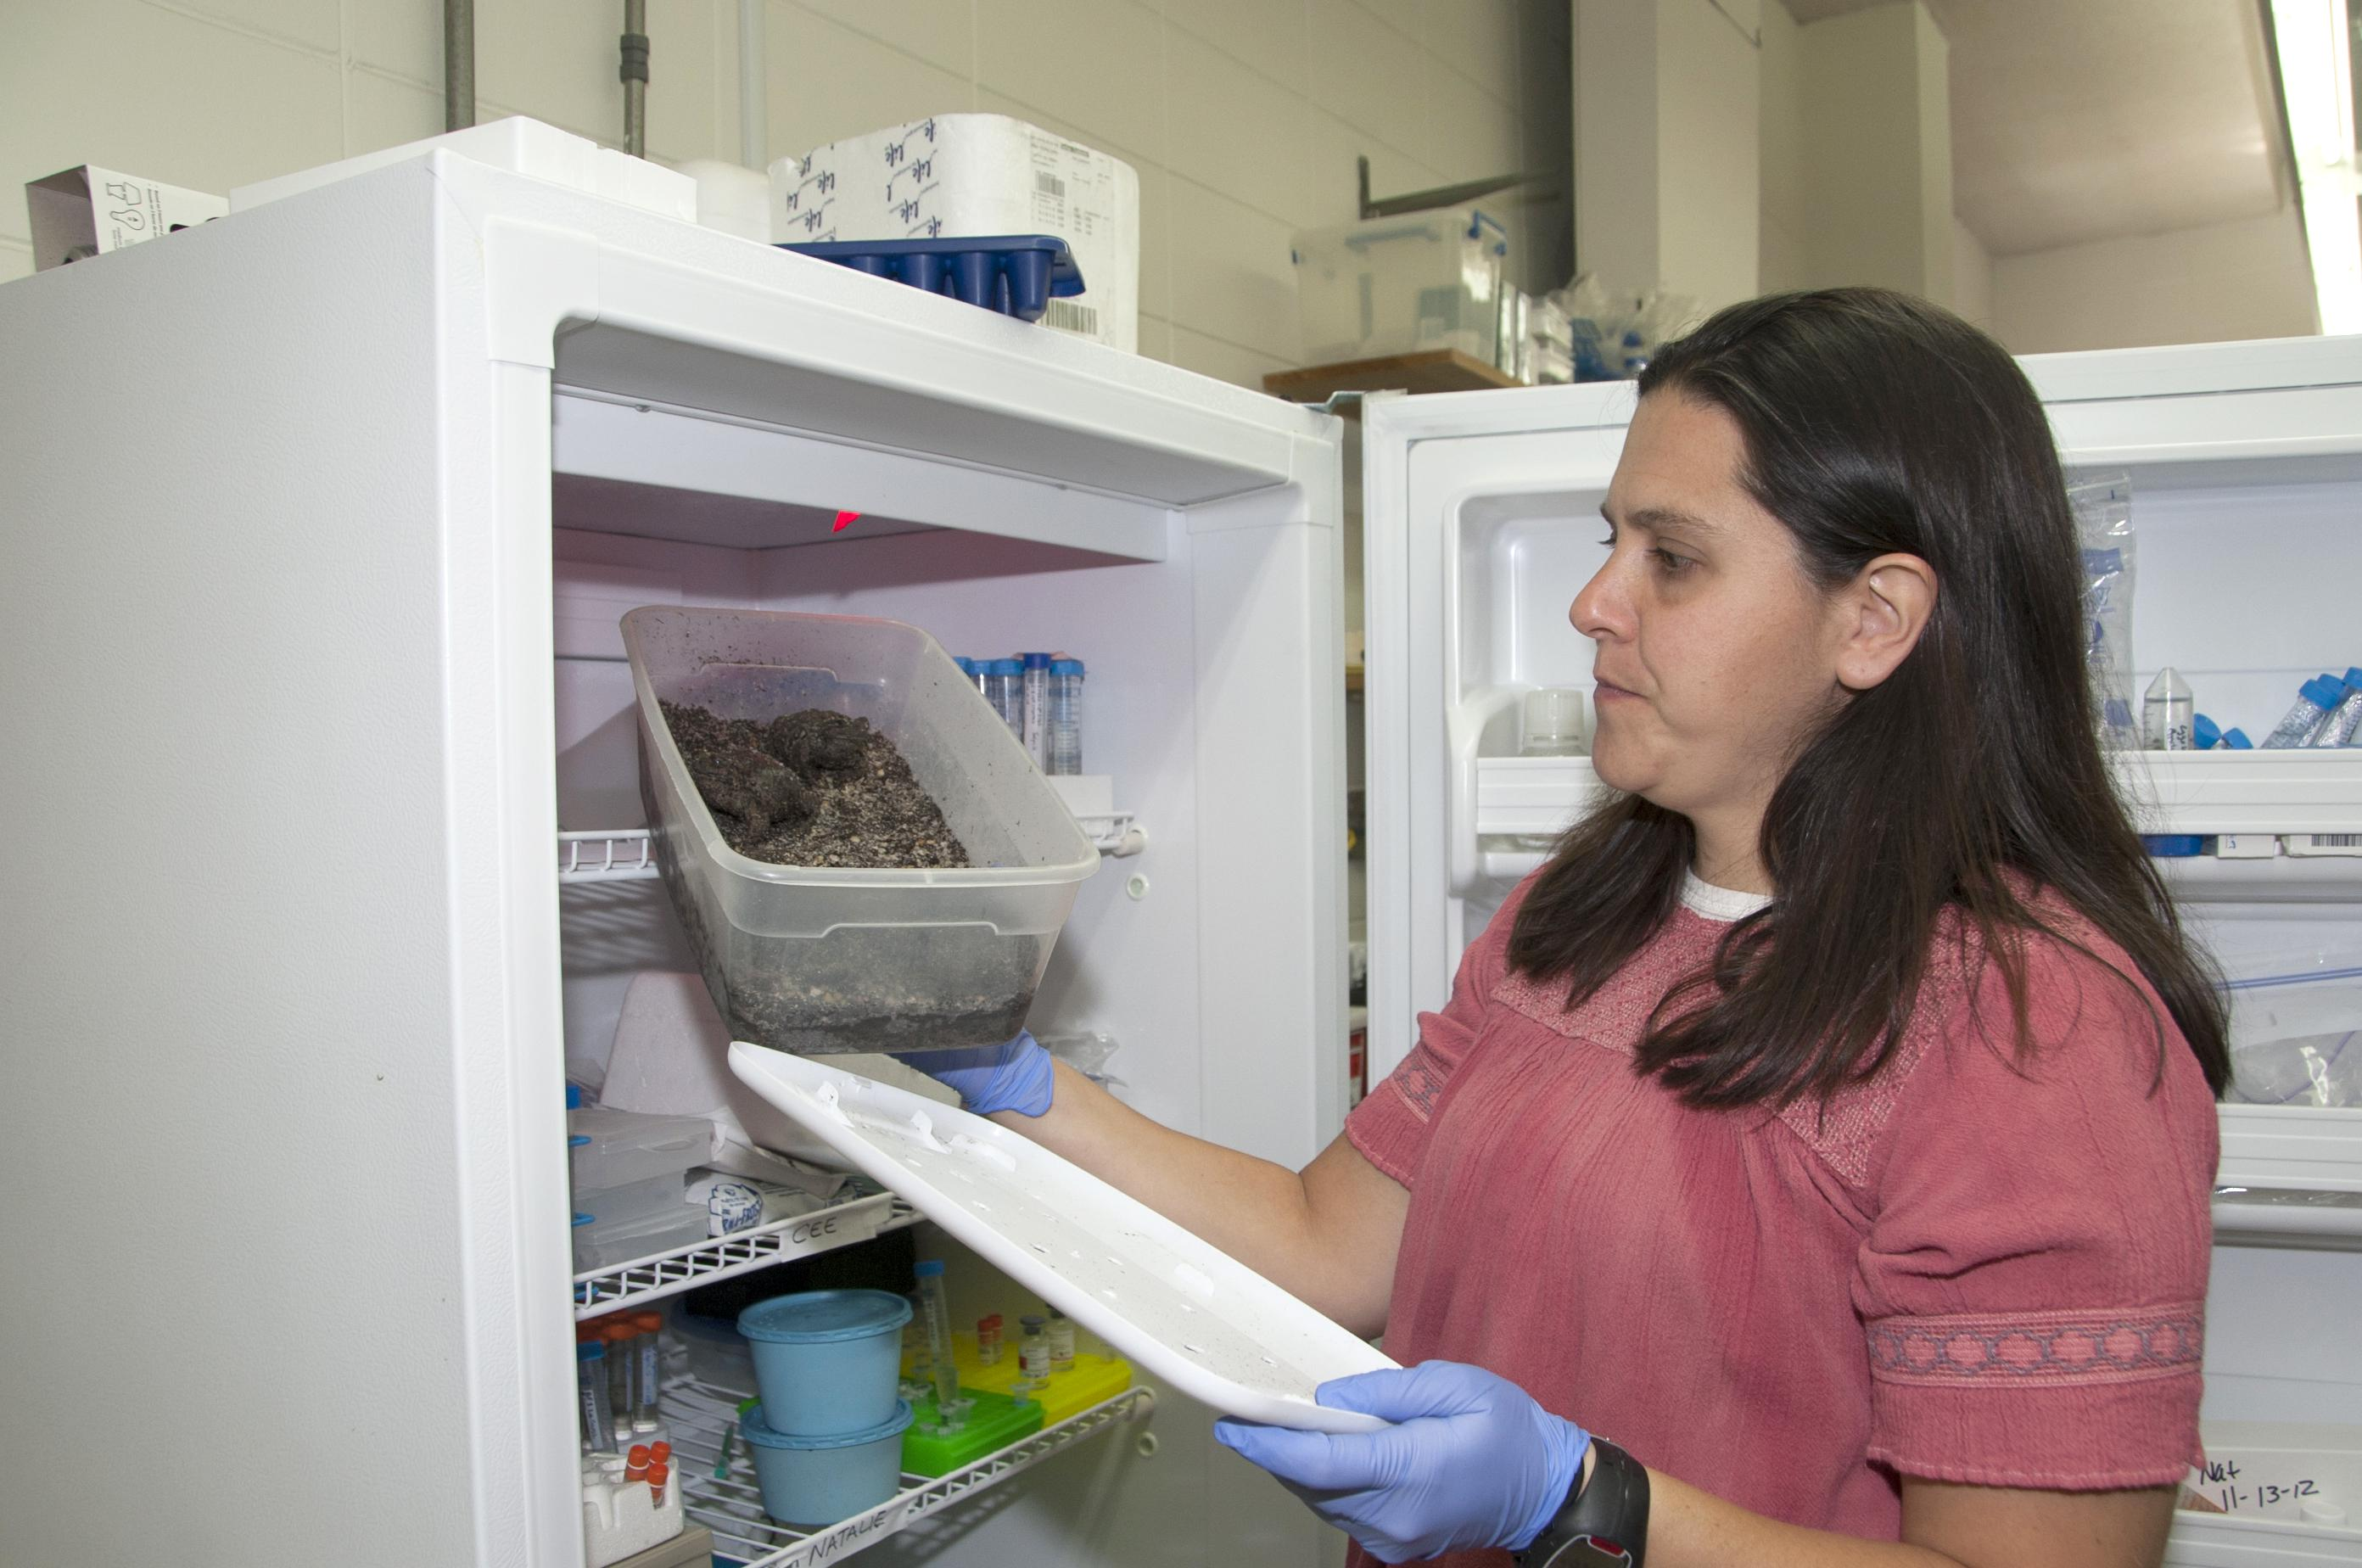 Mississippi State University researcher Natalie Calatayud checks on female Boreal toads hibernating in a laboratory refrigerator. Researchers found the toads will lay eggs in captivity after spending time in simulated conditions that mimic their native environment. (Photo by MSU Ag Communications/Kat Lawrence)